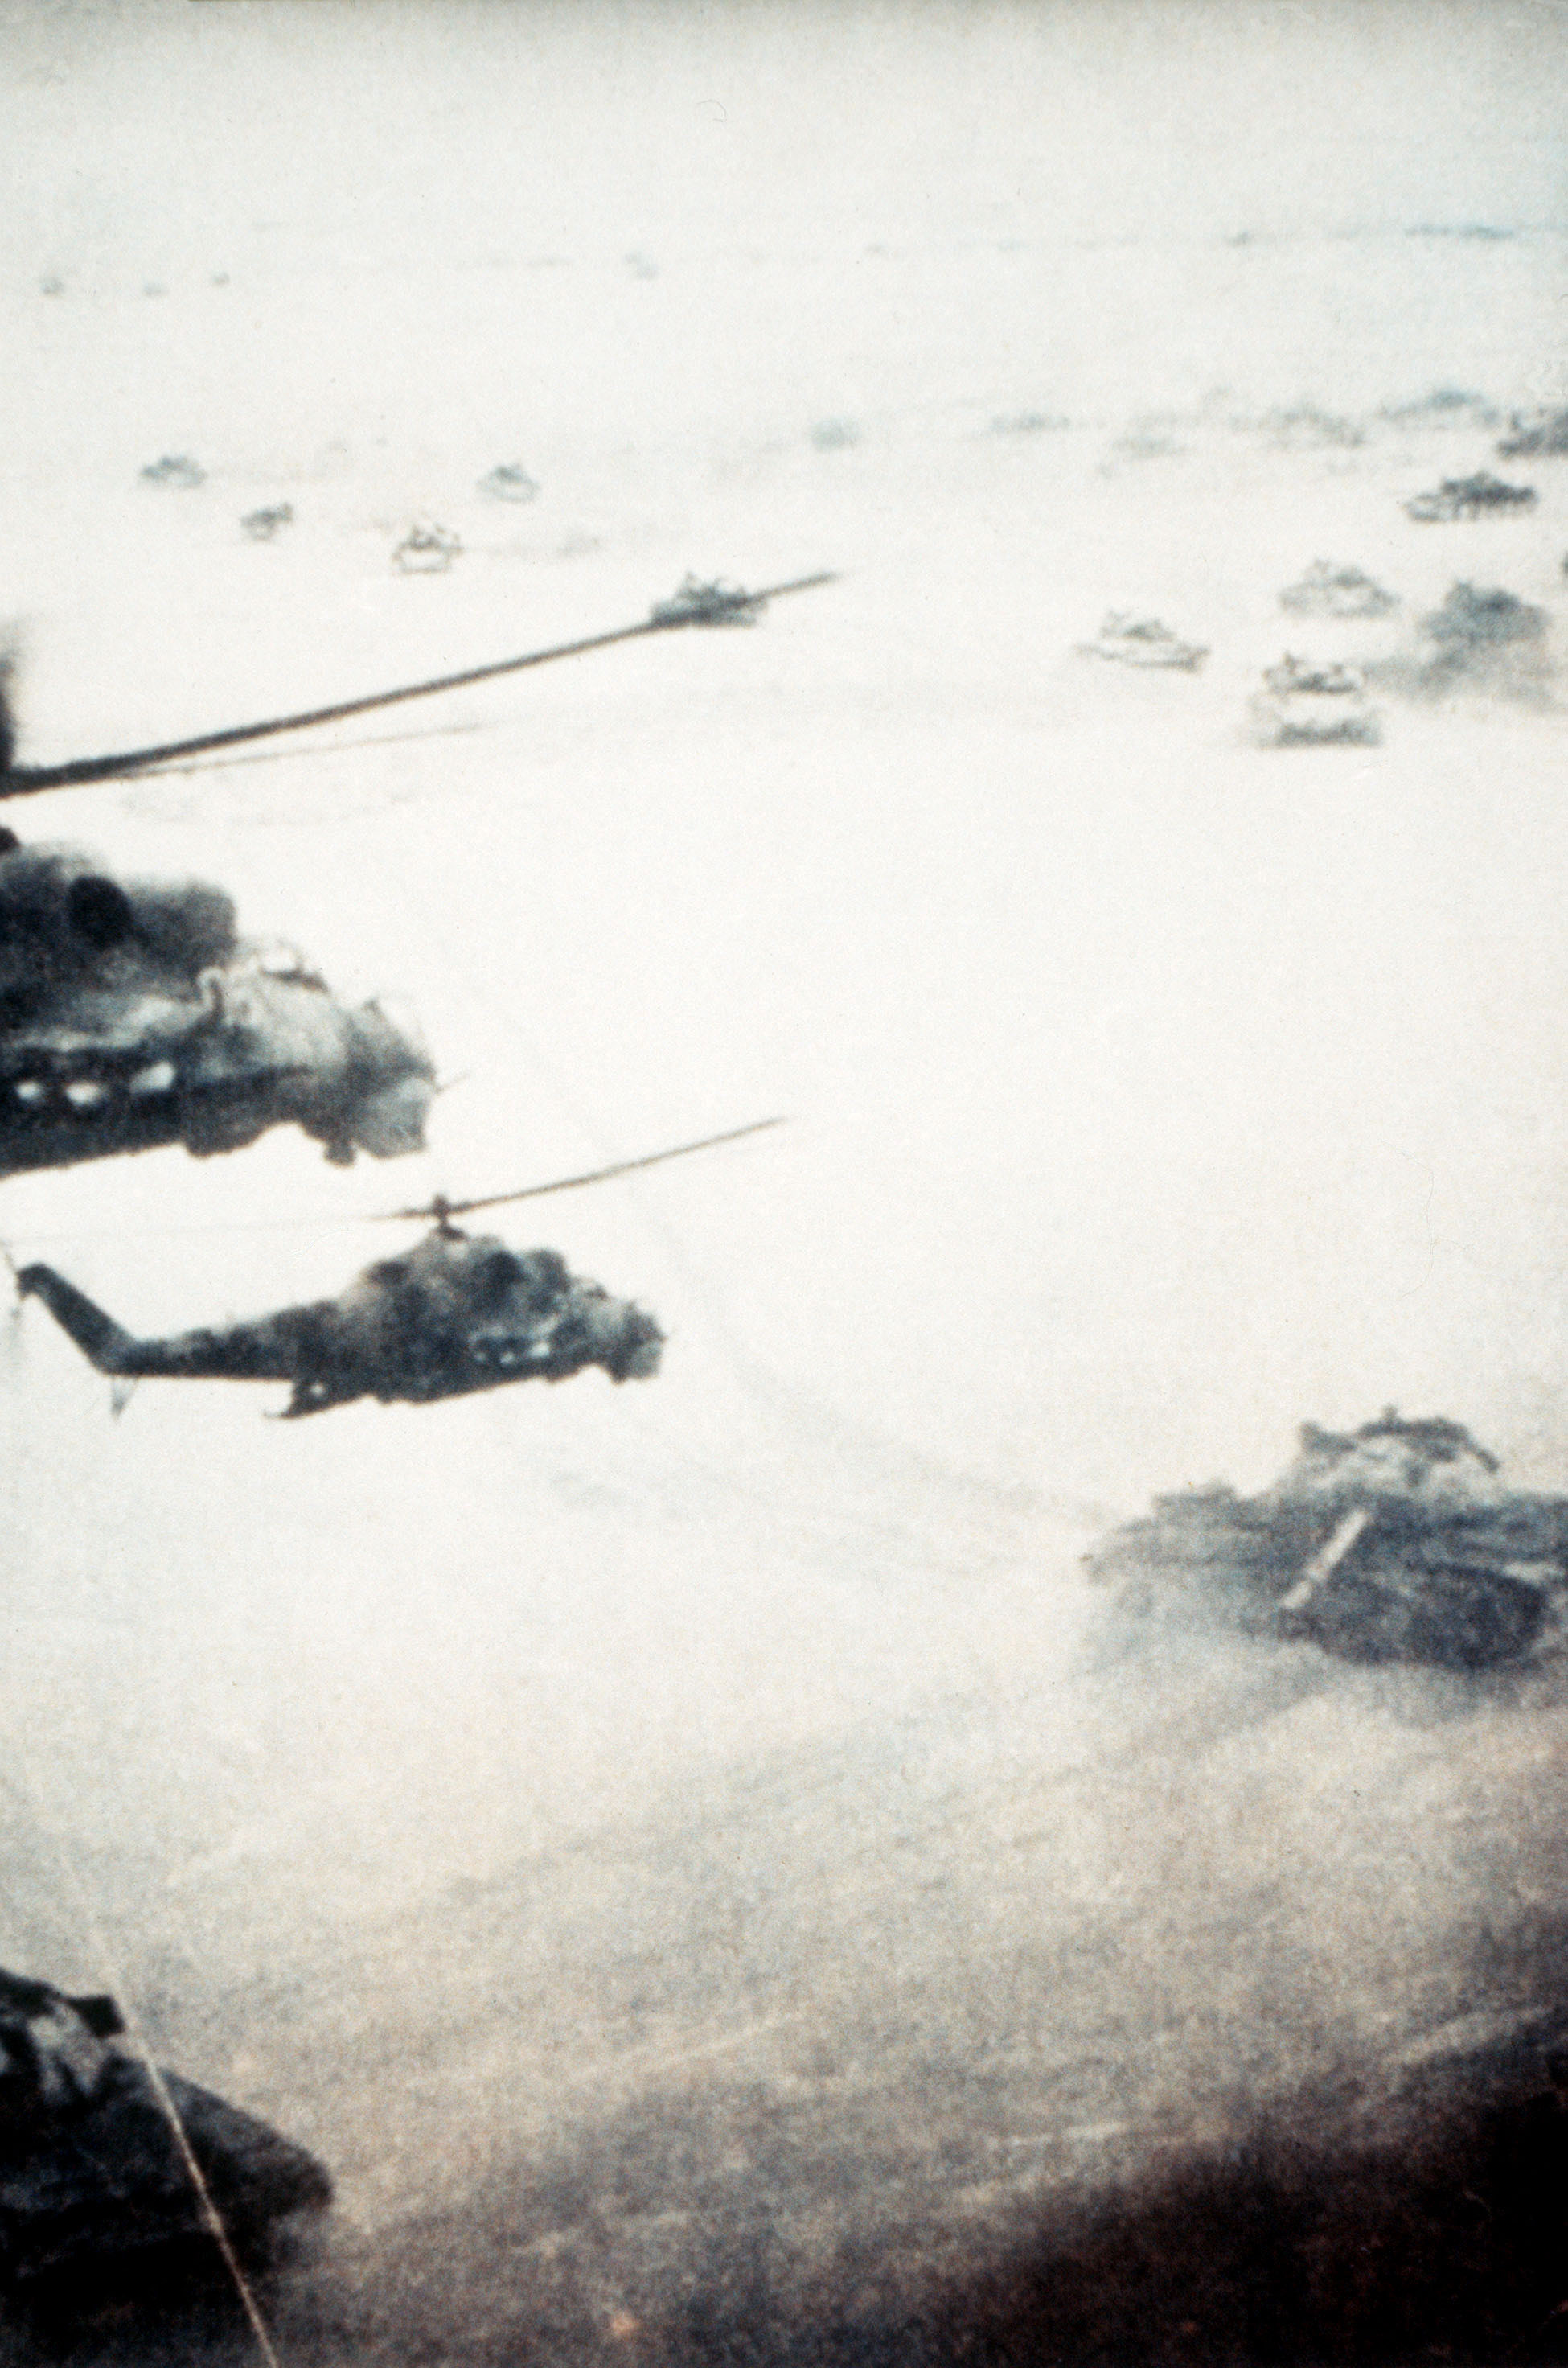 afghan soviet war essay Download thesis statement on afghan soviet war in our database or order an original thesis paper that will be written by one of our staff writers and delivered.